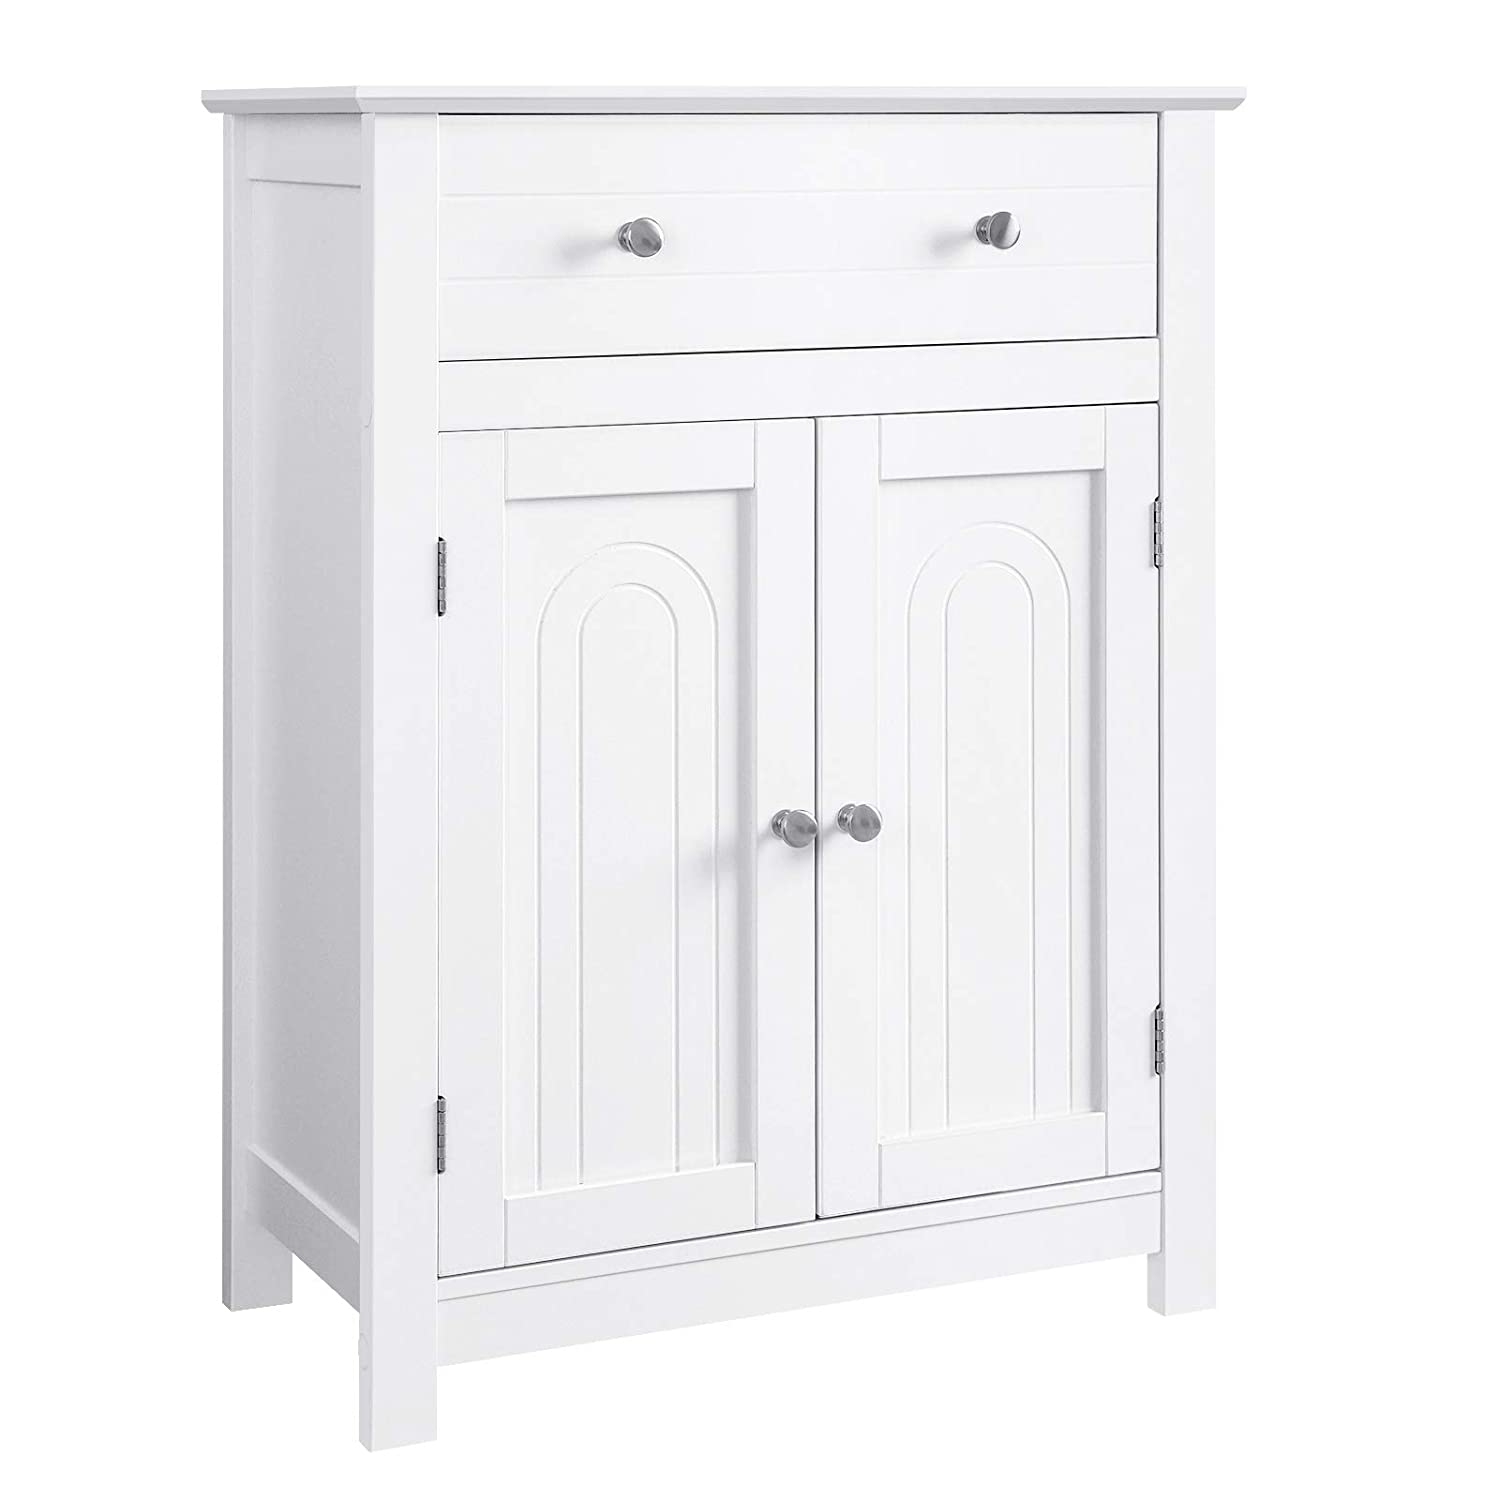 "VASAGLE Free Standing Bathroom Cabinet with Drawer and Adjustable Shelf, Kitchen Cupboard, Wooden Entryway Storage Cabinet White, 23.6"" L x 11.8"" W x 31.5"" H UBBC61WT"